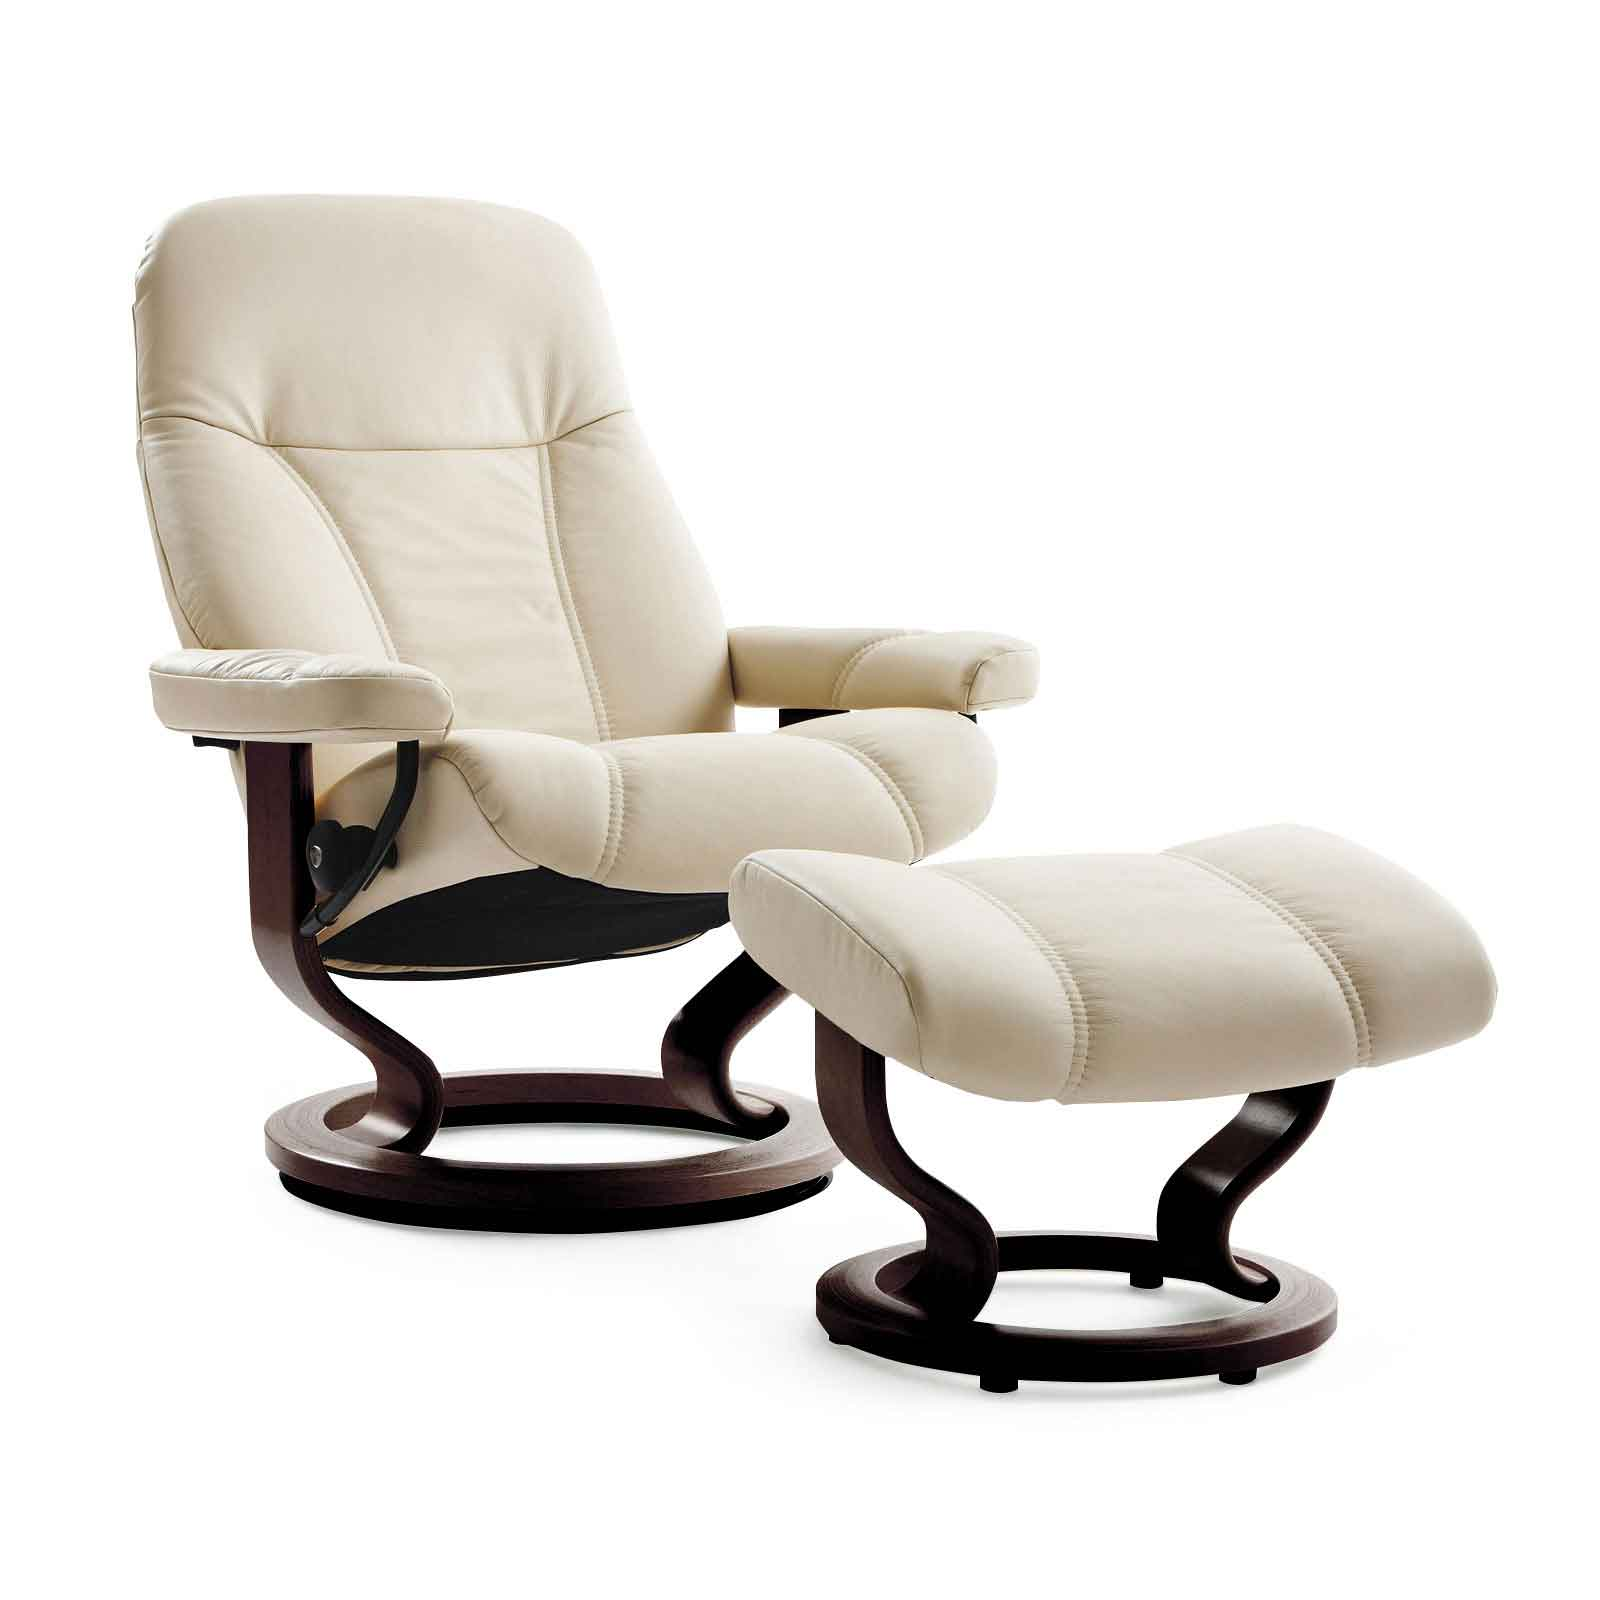 Stressless Sessel Berlin Stressless Sessel Consul M Batick Cream Mit Hocker